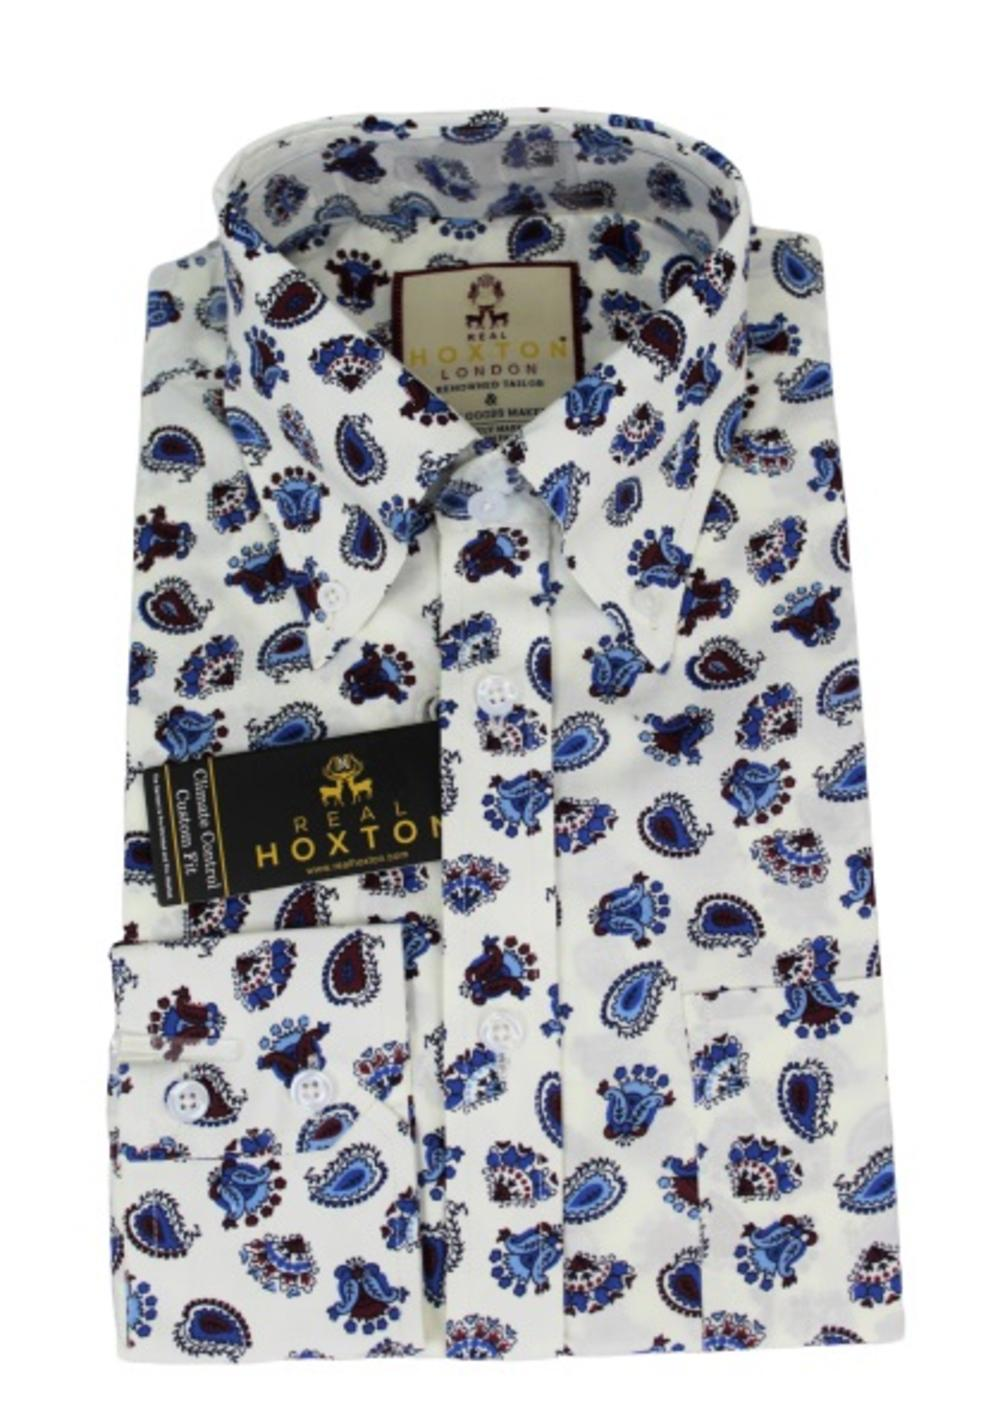 Real Hoxton Blue Paisley Print Shirt White